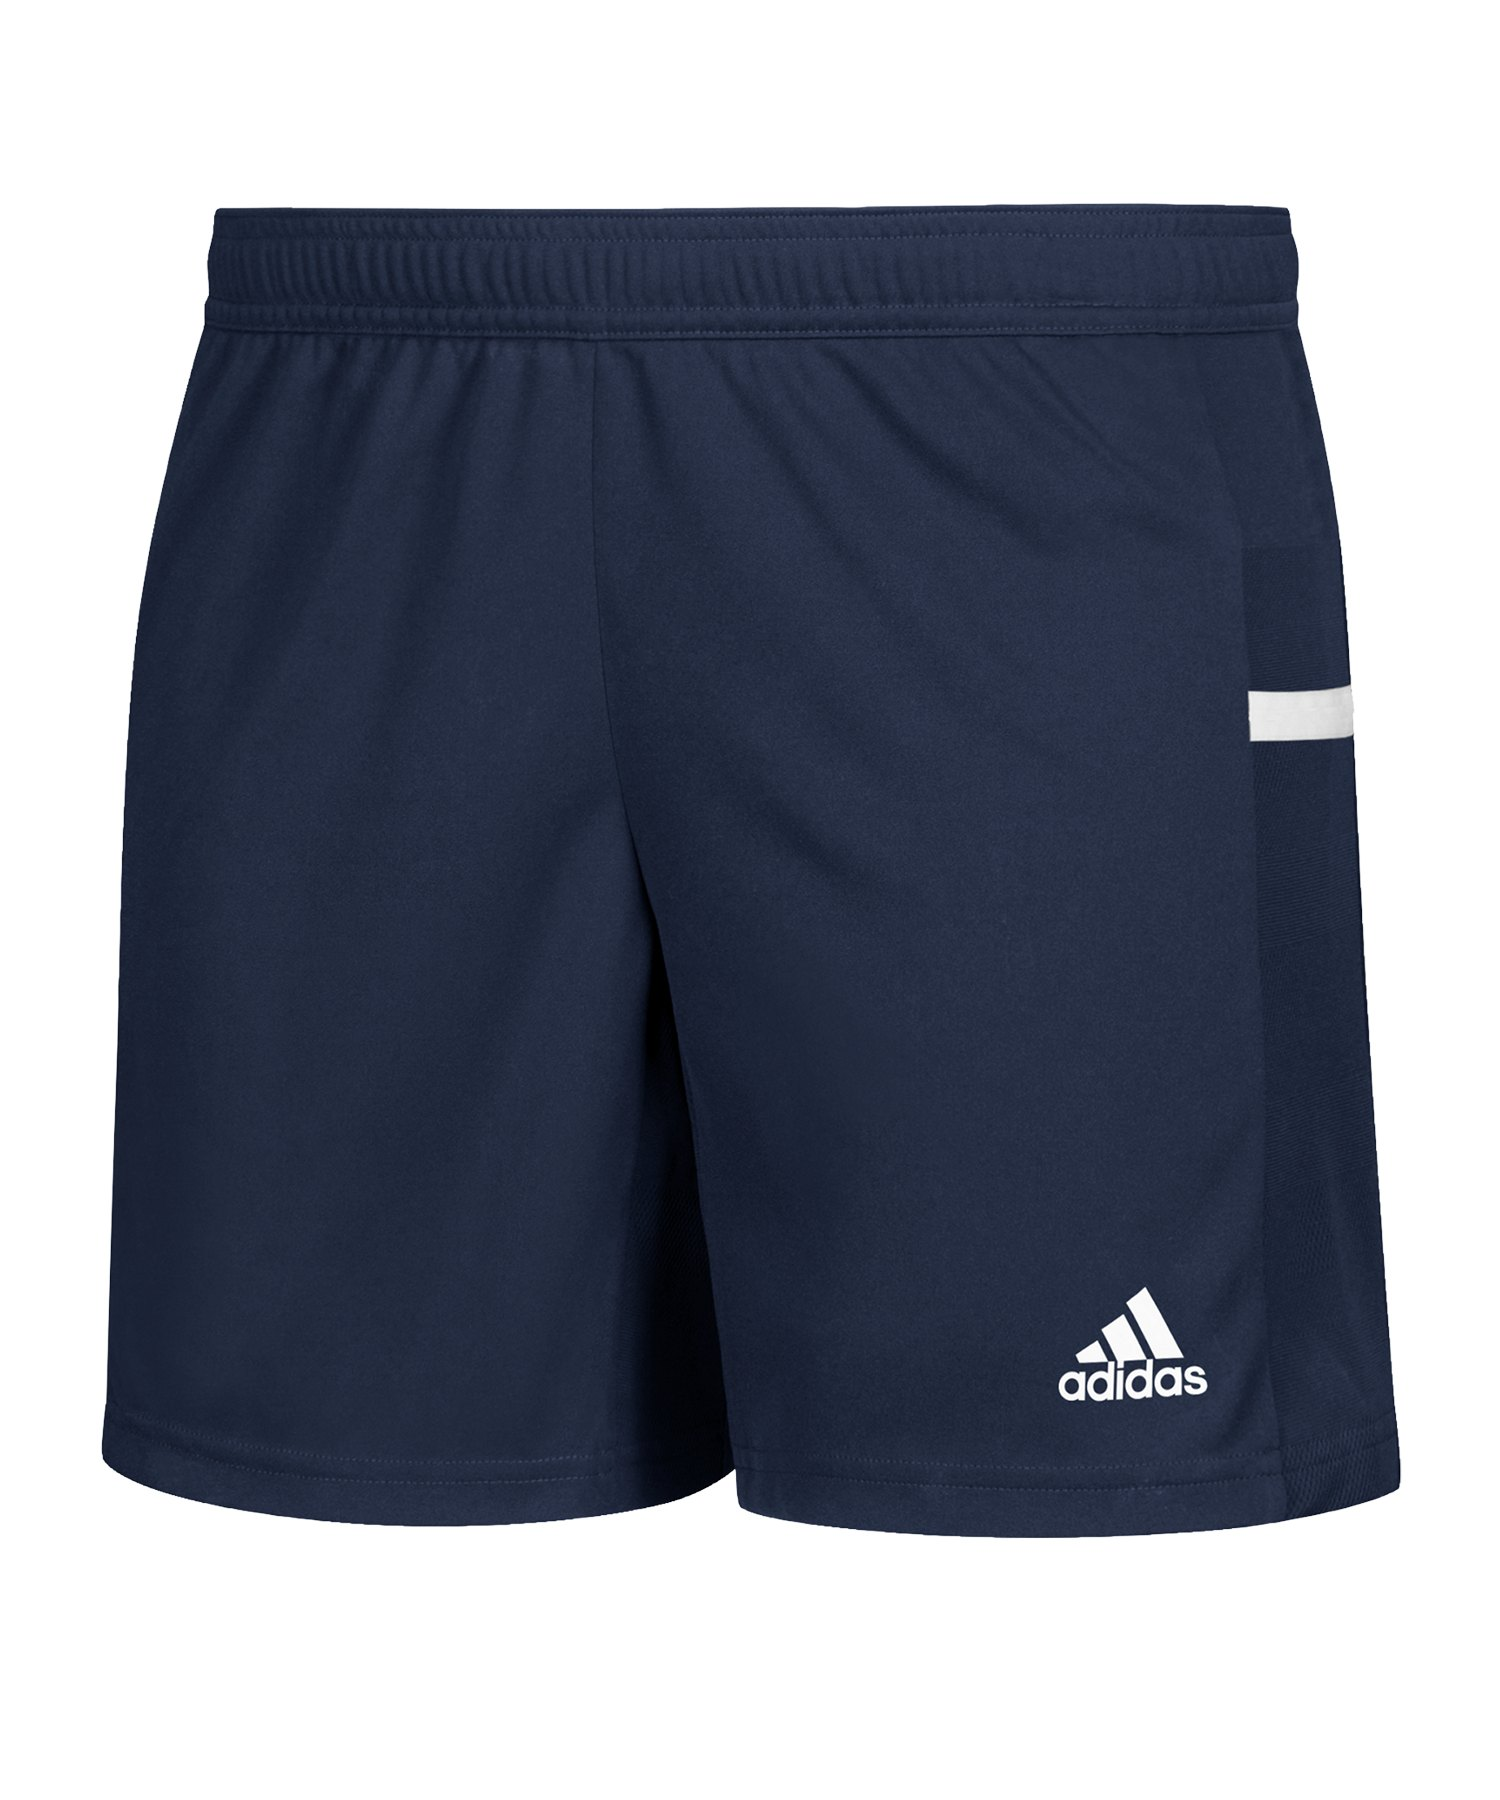 adidas Team 19 Knitted Short Damen Blau Weiss - blau